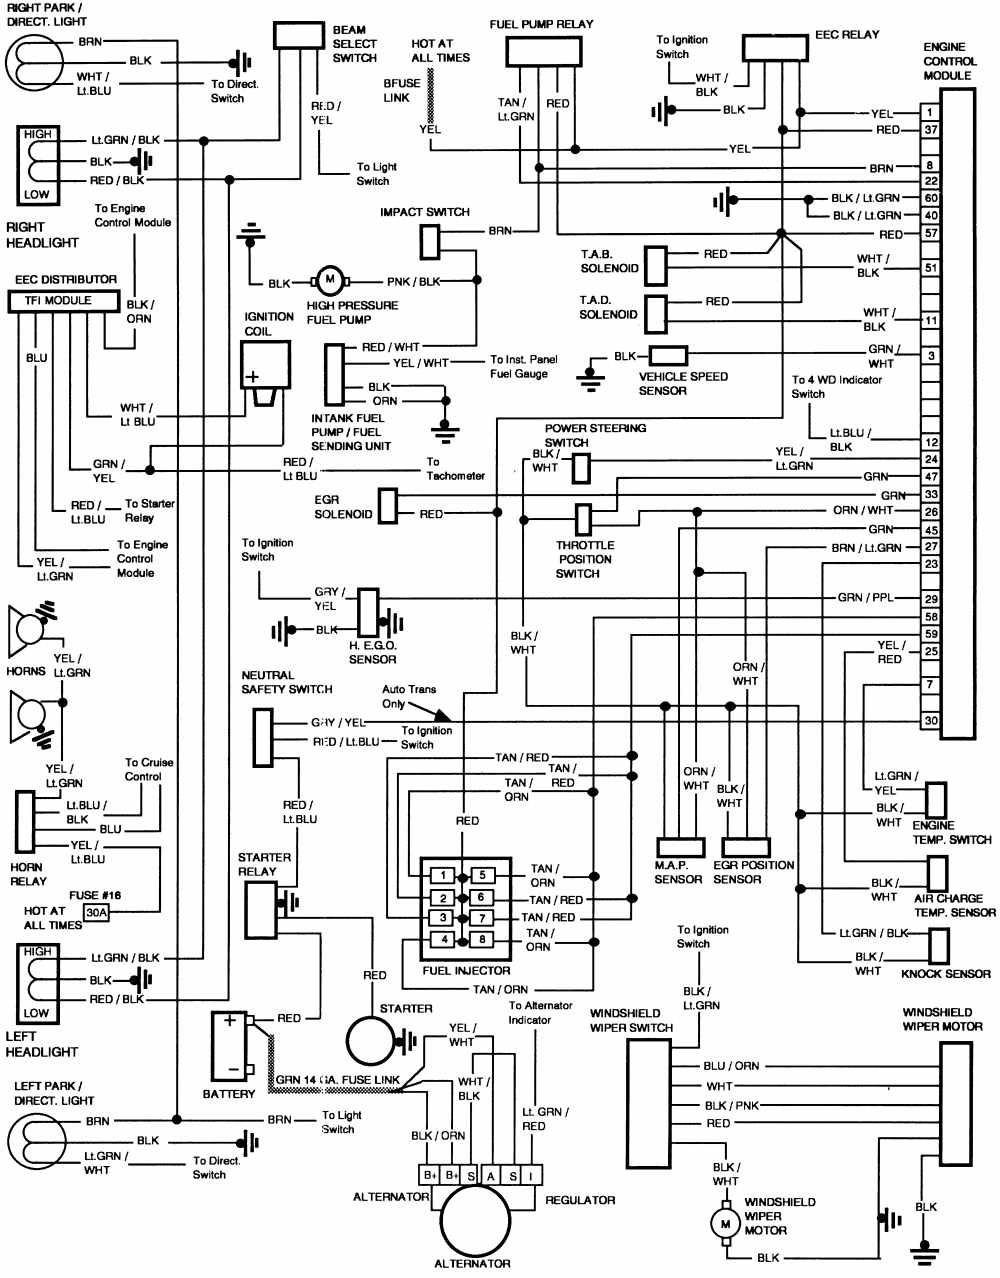 2000 Ford Ranger Engine Wiring Diagram, 2000, Free Engine